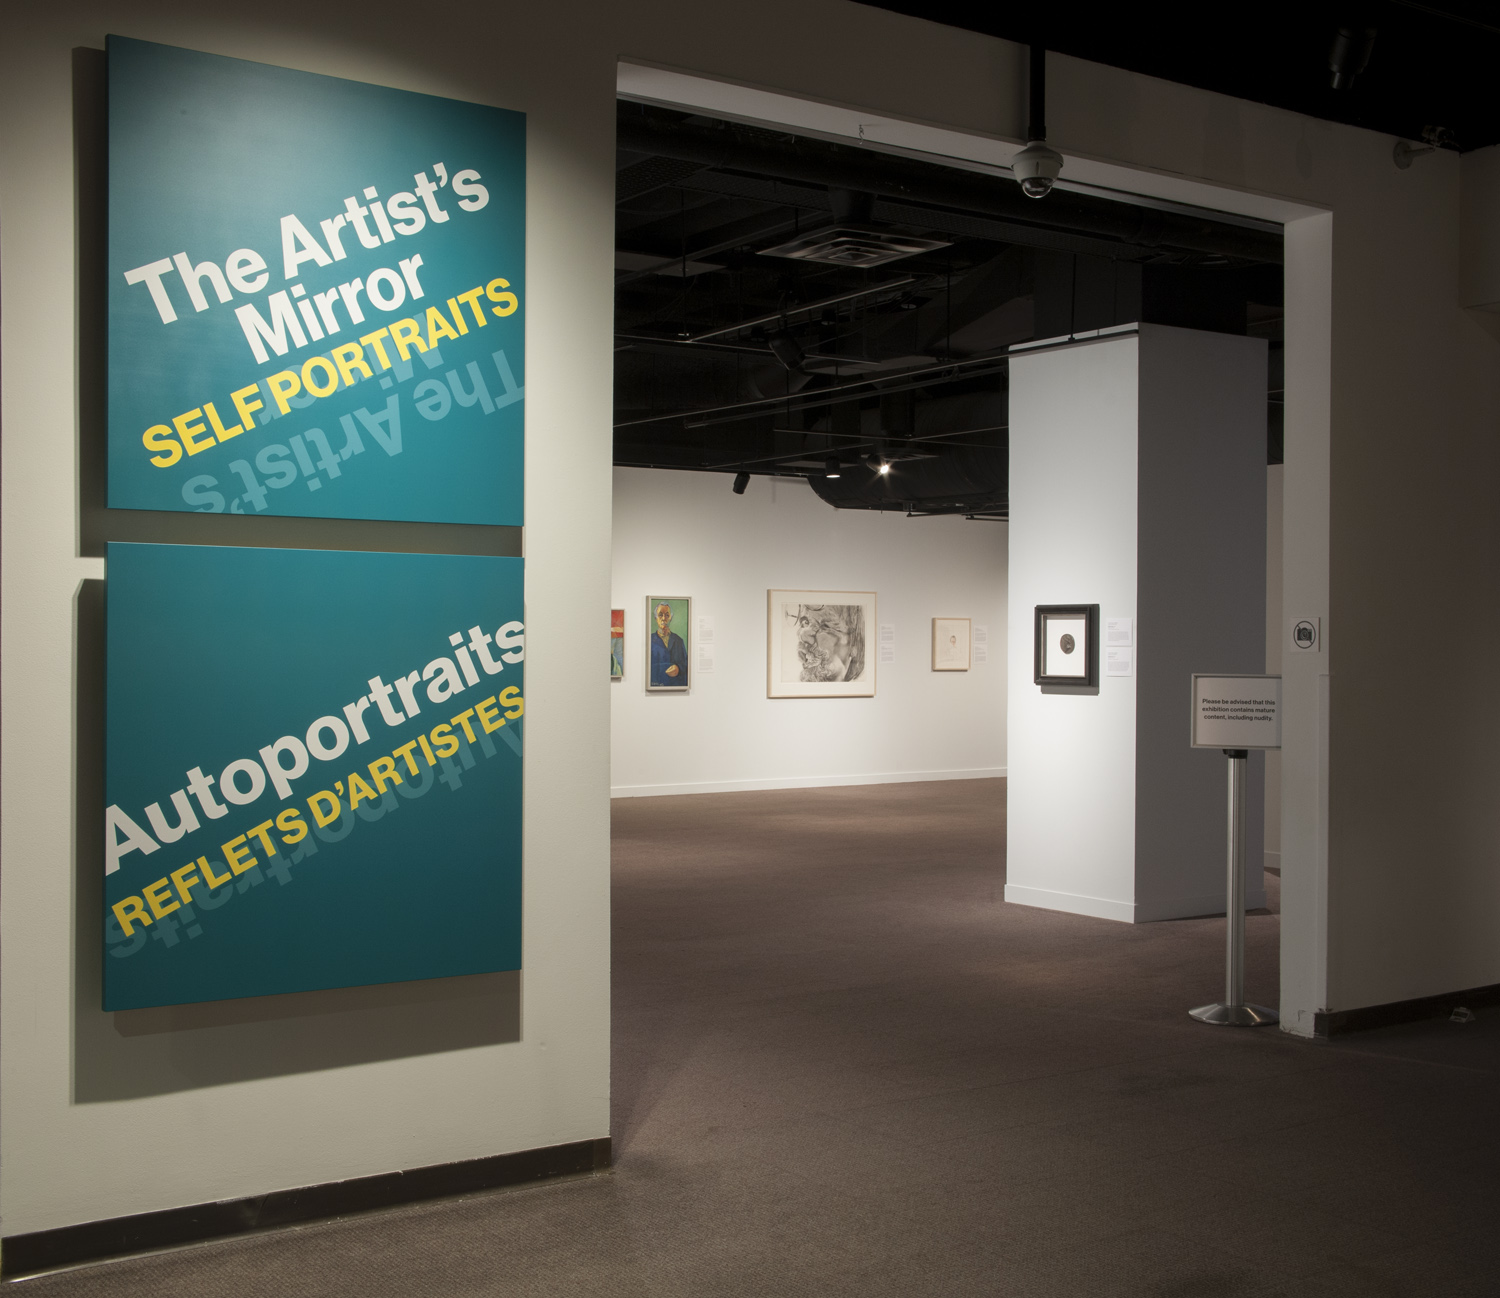 A colour photograph of the entrance to the exhibition space at the Glenbow Museum.